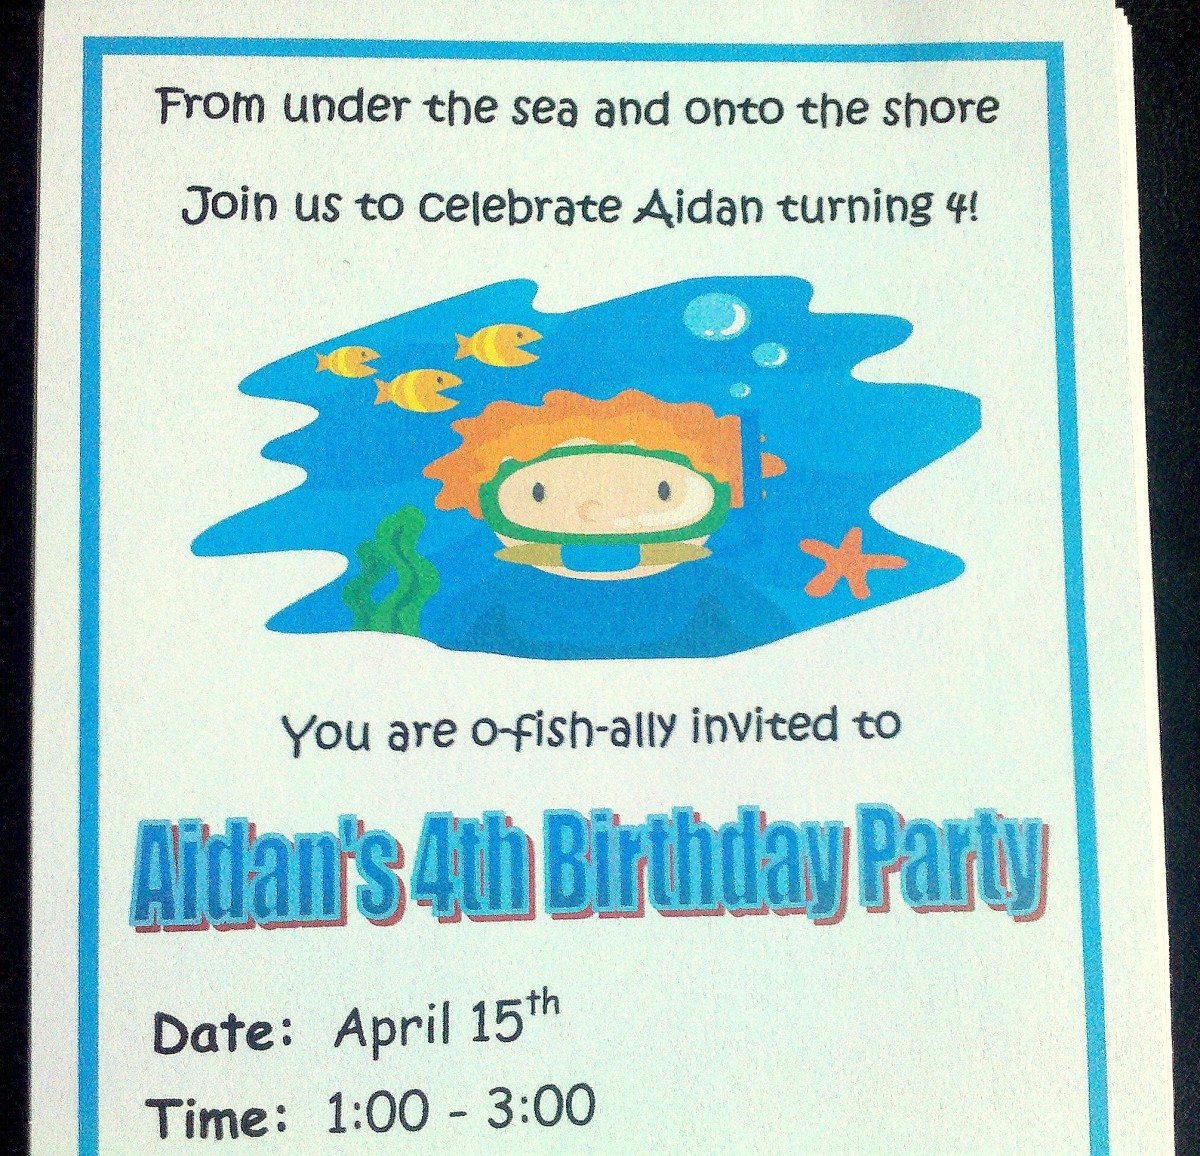 Our homemade ocean party invitations!